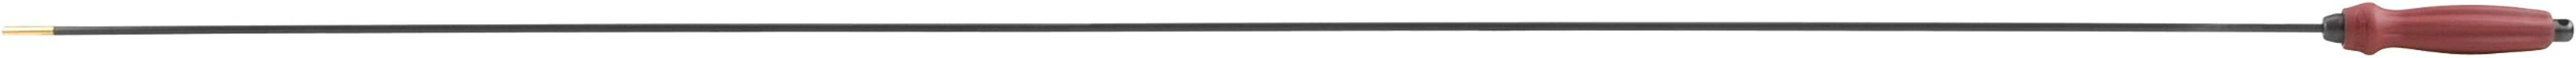 Tipton 1-Piece Deluxe Cleaning Rods with Multiple Caliber Sizes and Lengths, Carbon Fiber Shaft and Hanging Hole for Cleaning, Maintenance and Gunsmithing